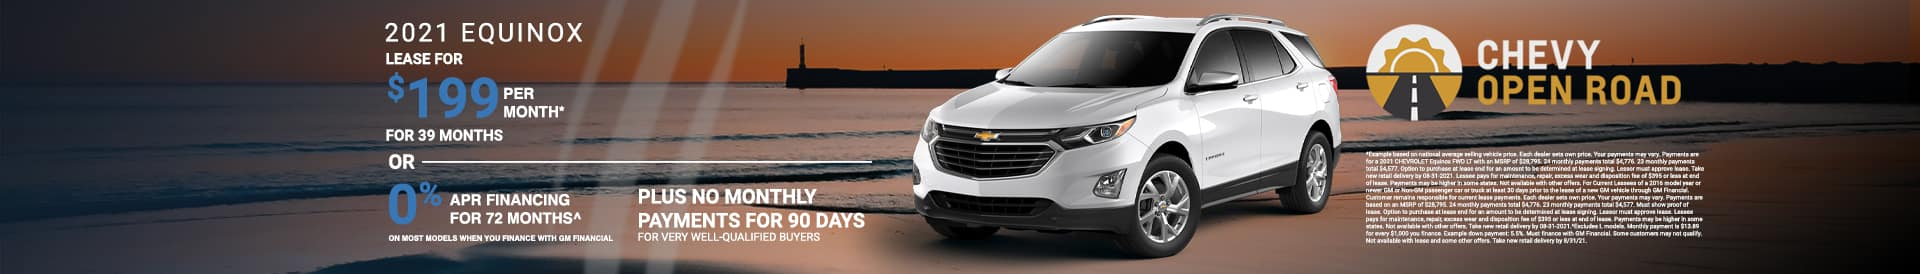 Finance a new Equinox at 0% APR. See dealer for details.